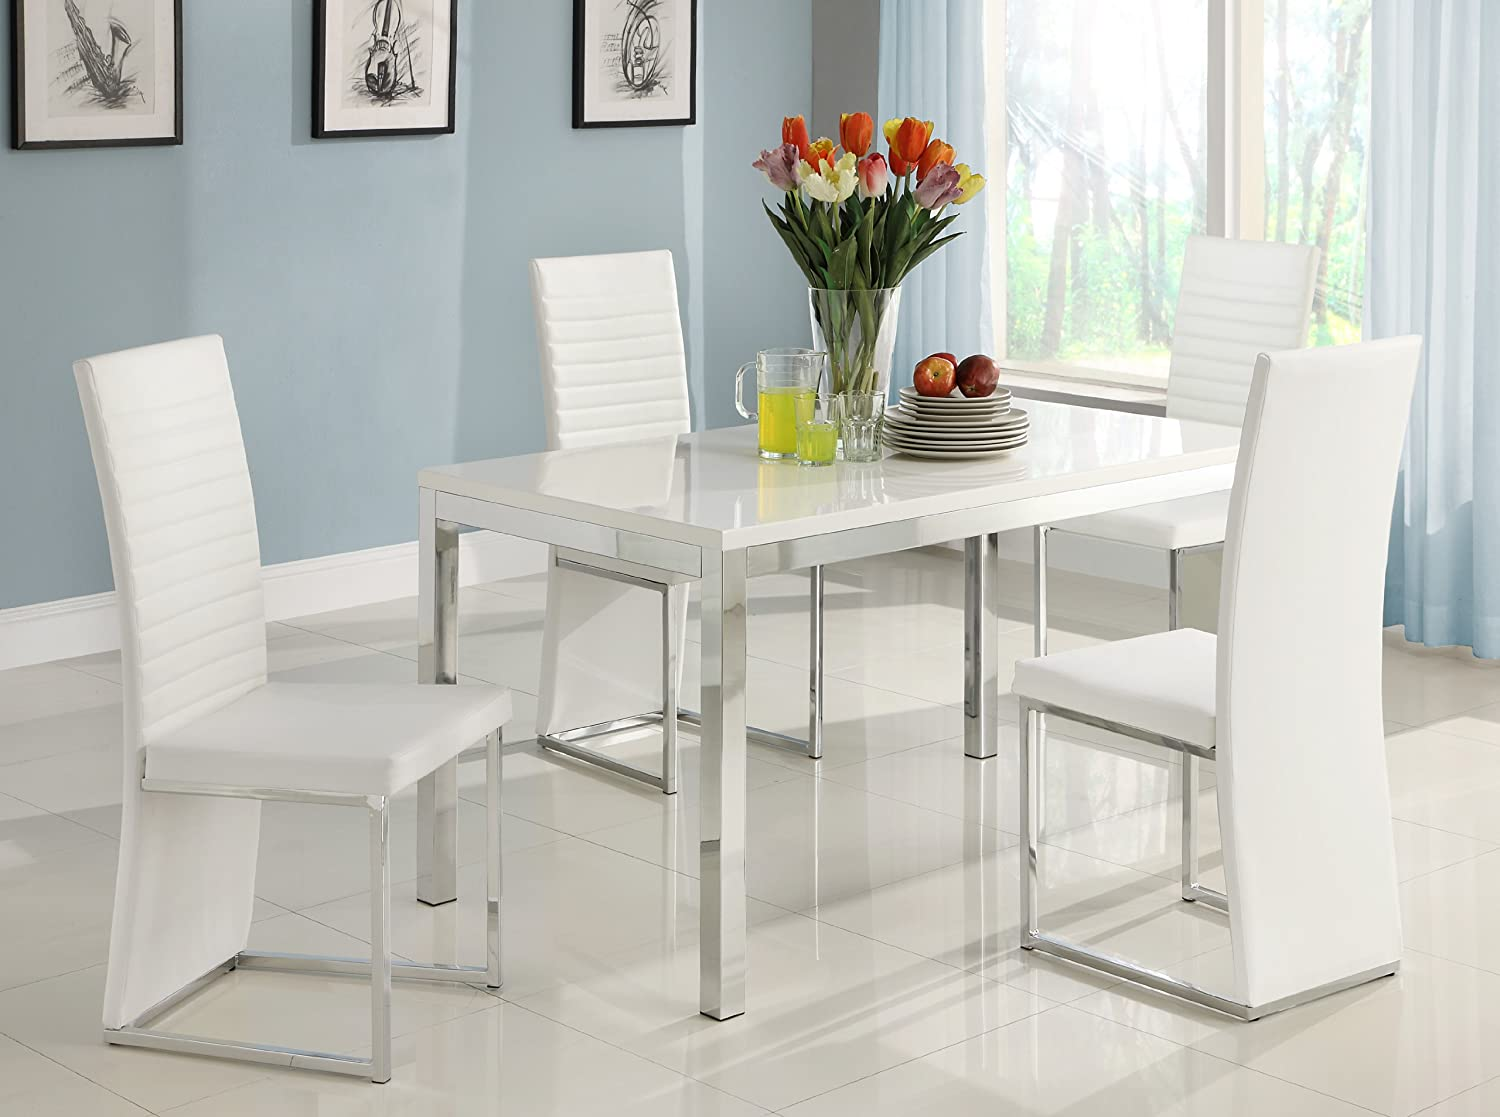 Elegant Amazon.com   Homelegance Clarice Chrome Dining Table     Table U0026 Chair Sets